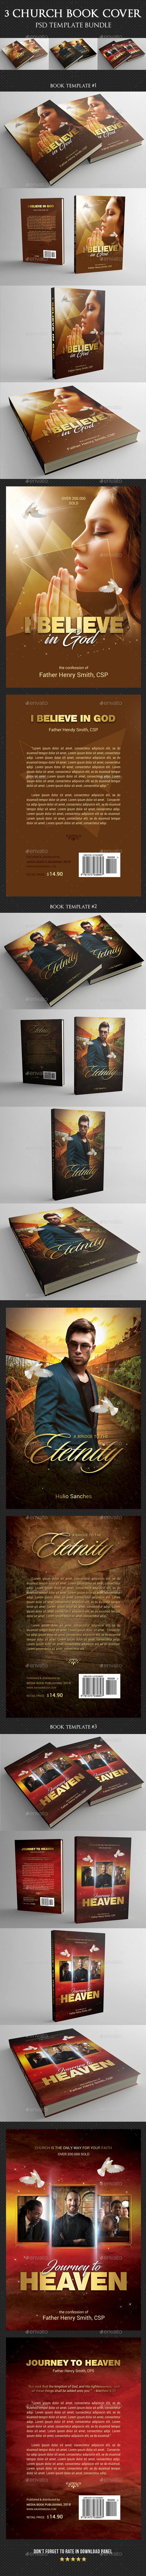 GraphicRiver Church Book Cover Template Bundle 20801139